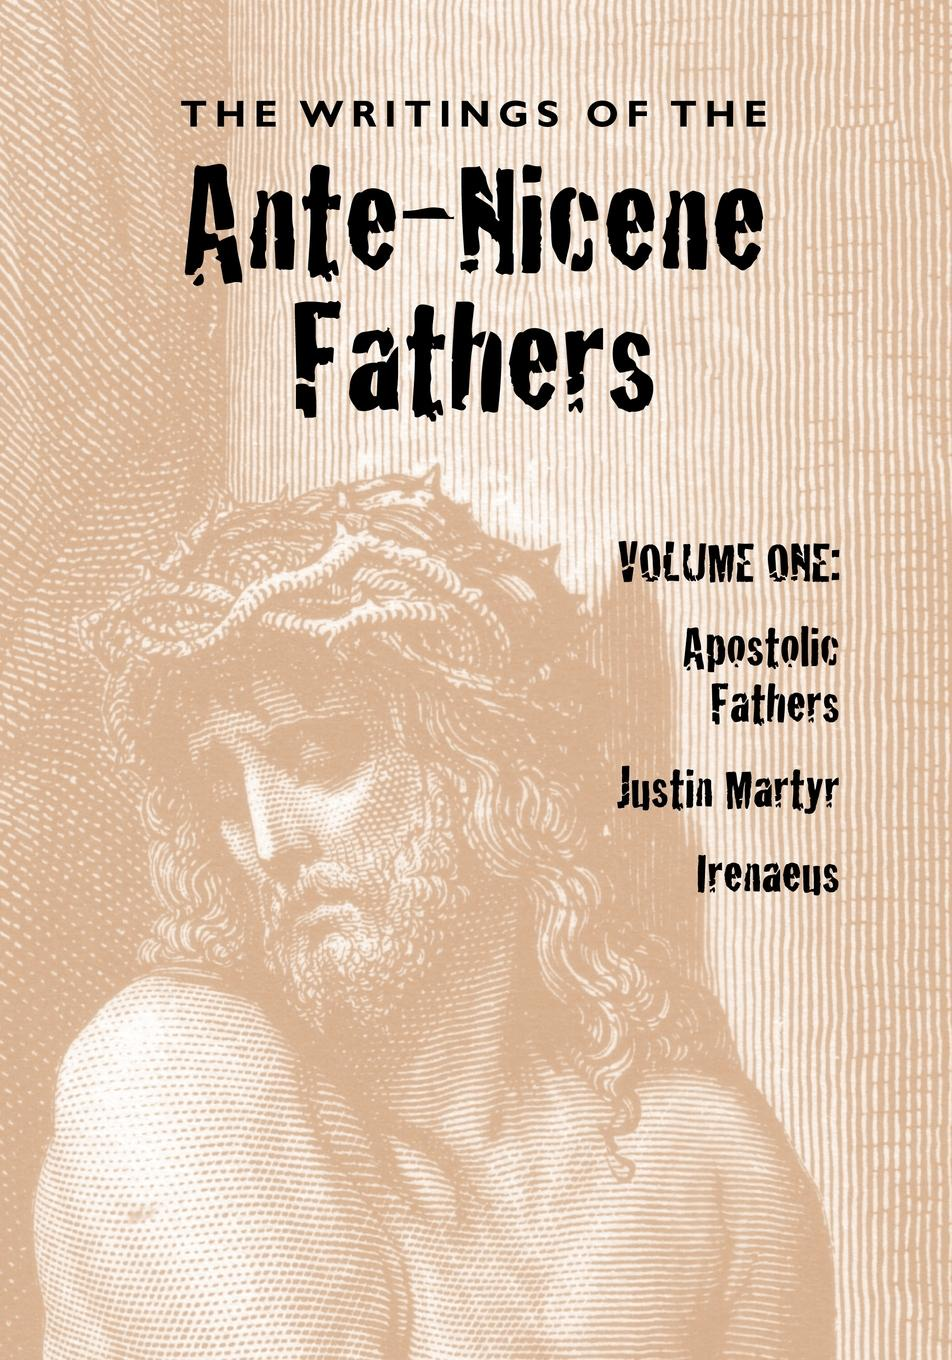 The Writings of the Ante-Nicene Fathers, Volume One alexander roberts james donaldson the writings of irenaeus